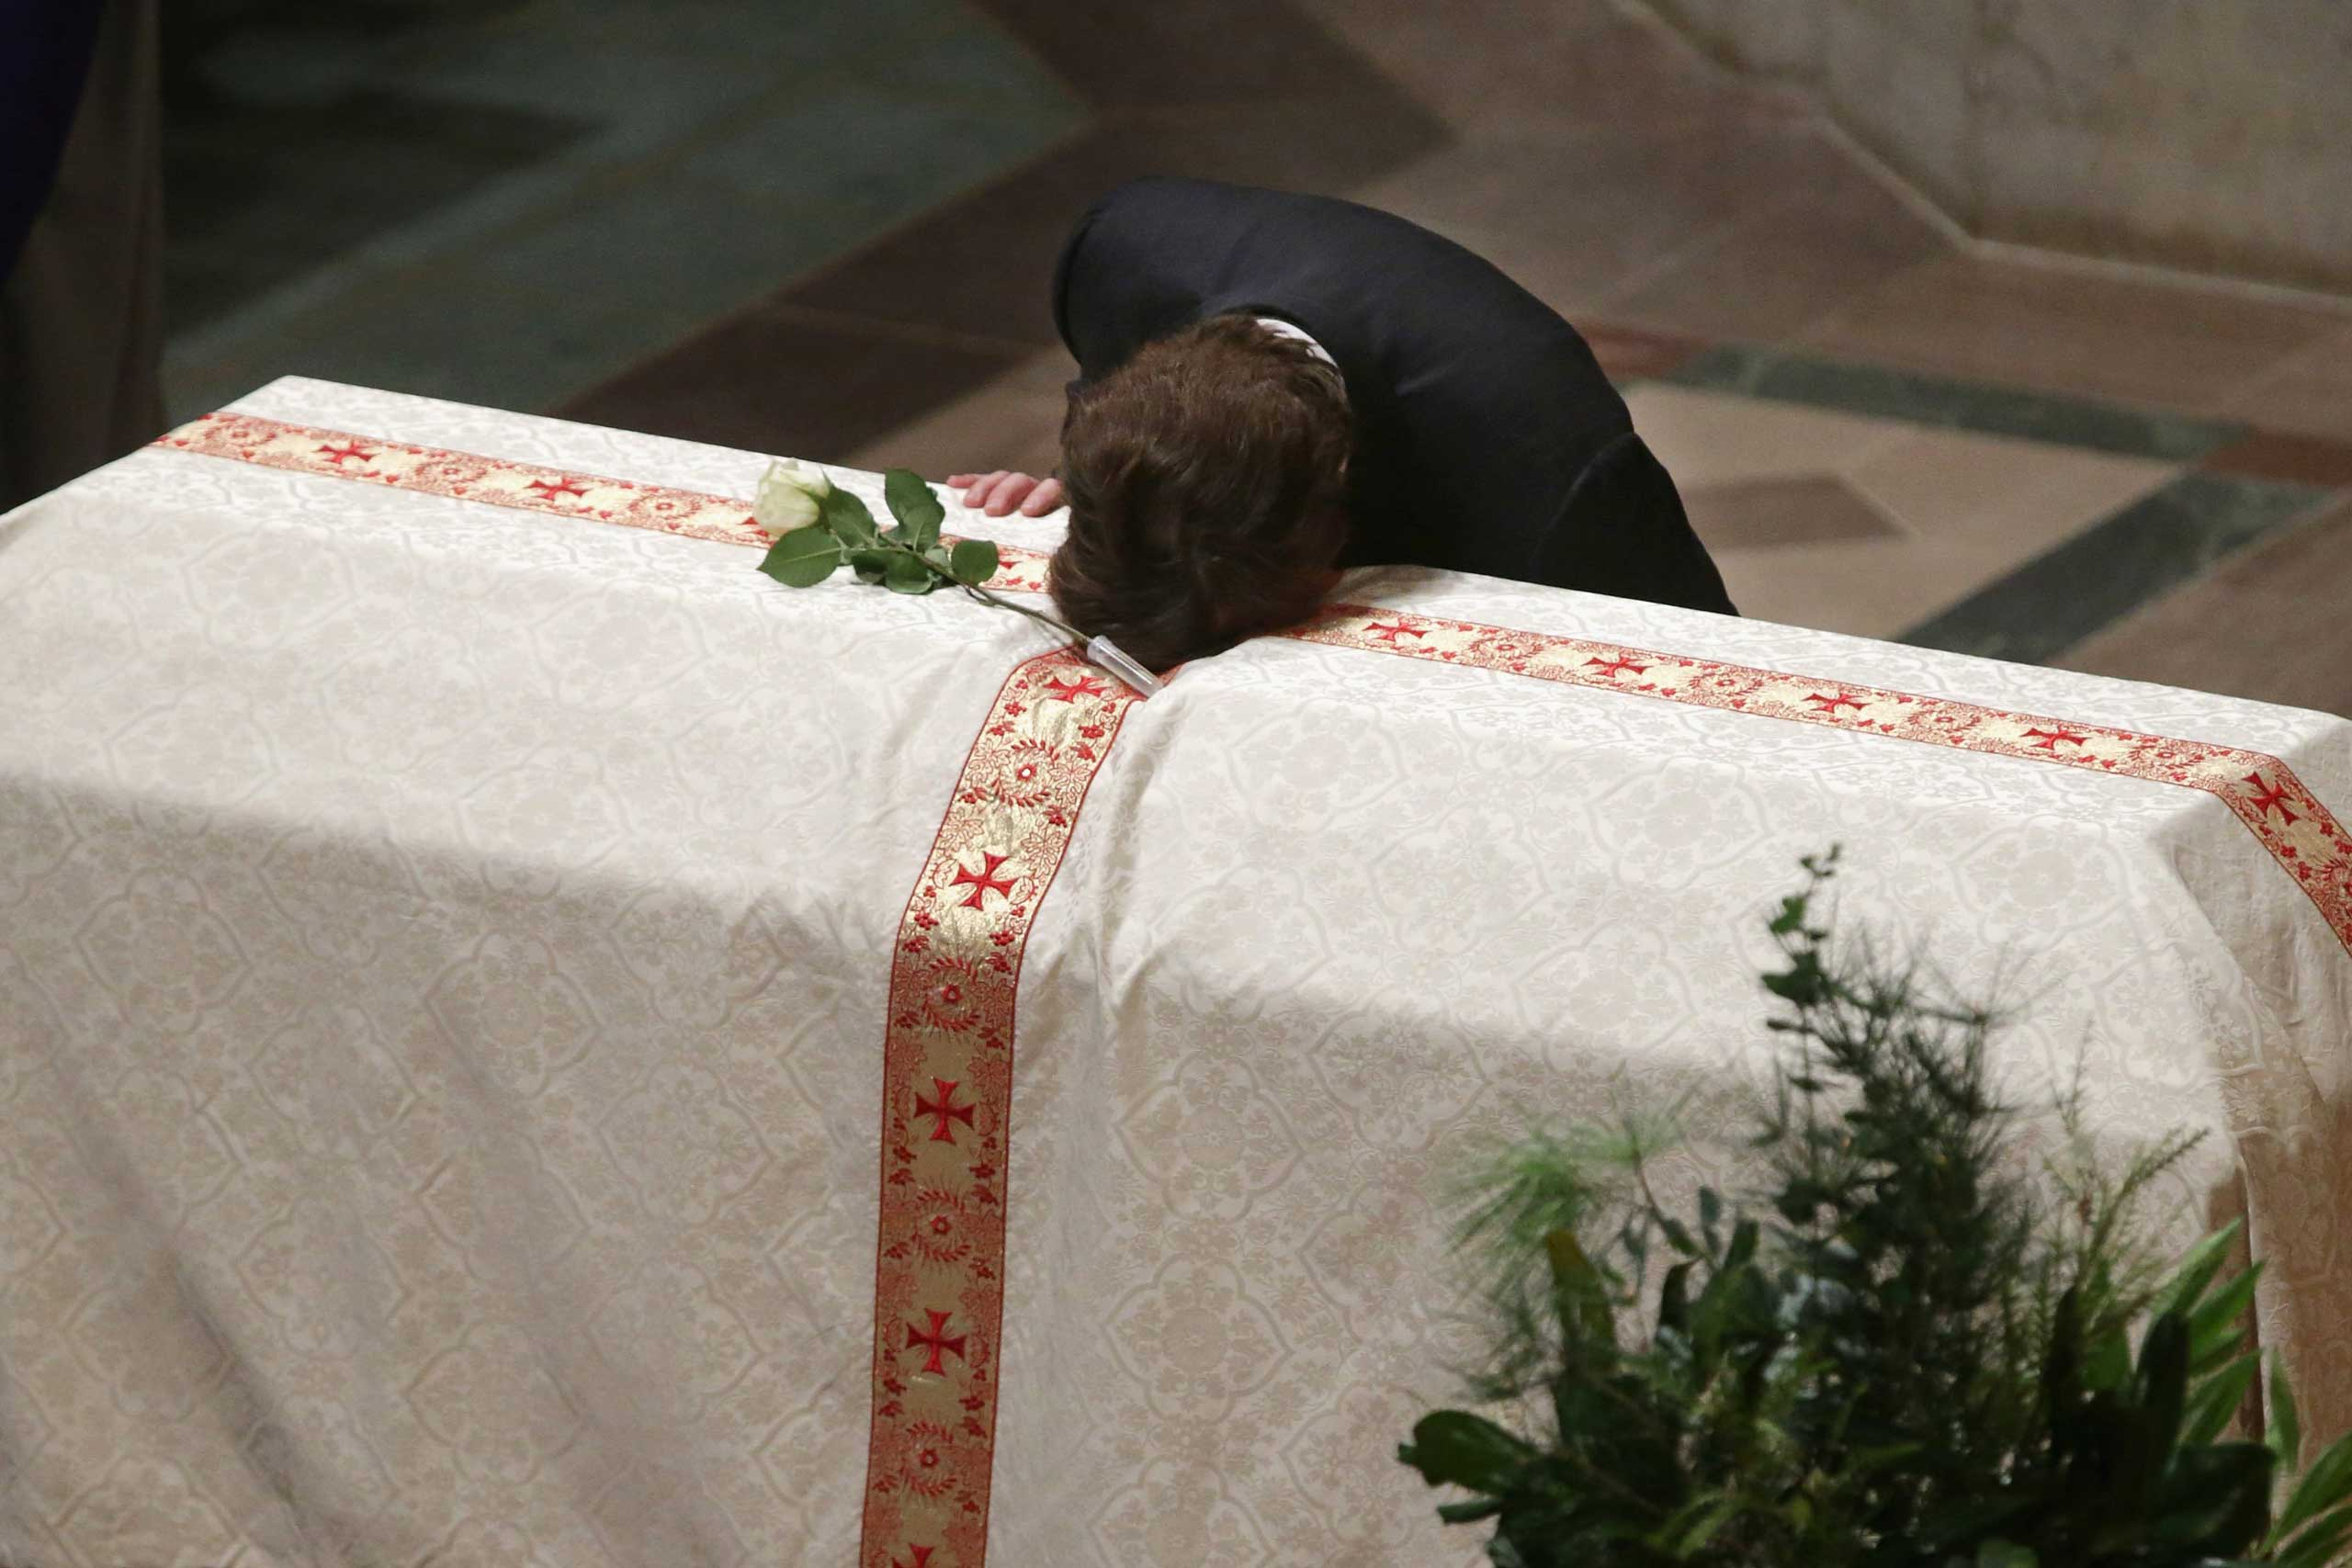 Oct. 29, 2014. Quinn Bradlee puts his head on the casket of his father and former Washington Post Executive Editor, Ben Bradlee, at the Washington National Cathedral in Washington, D.C.